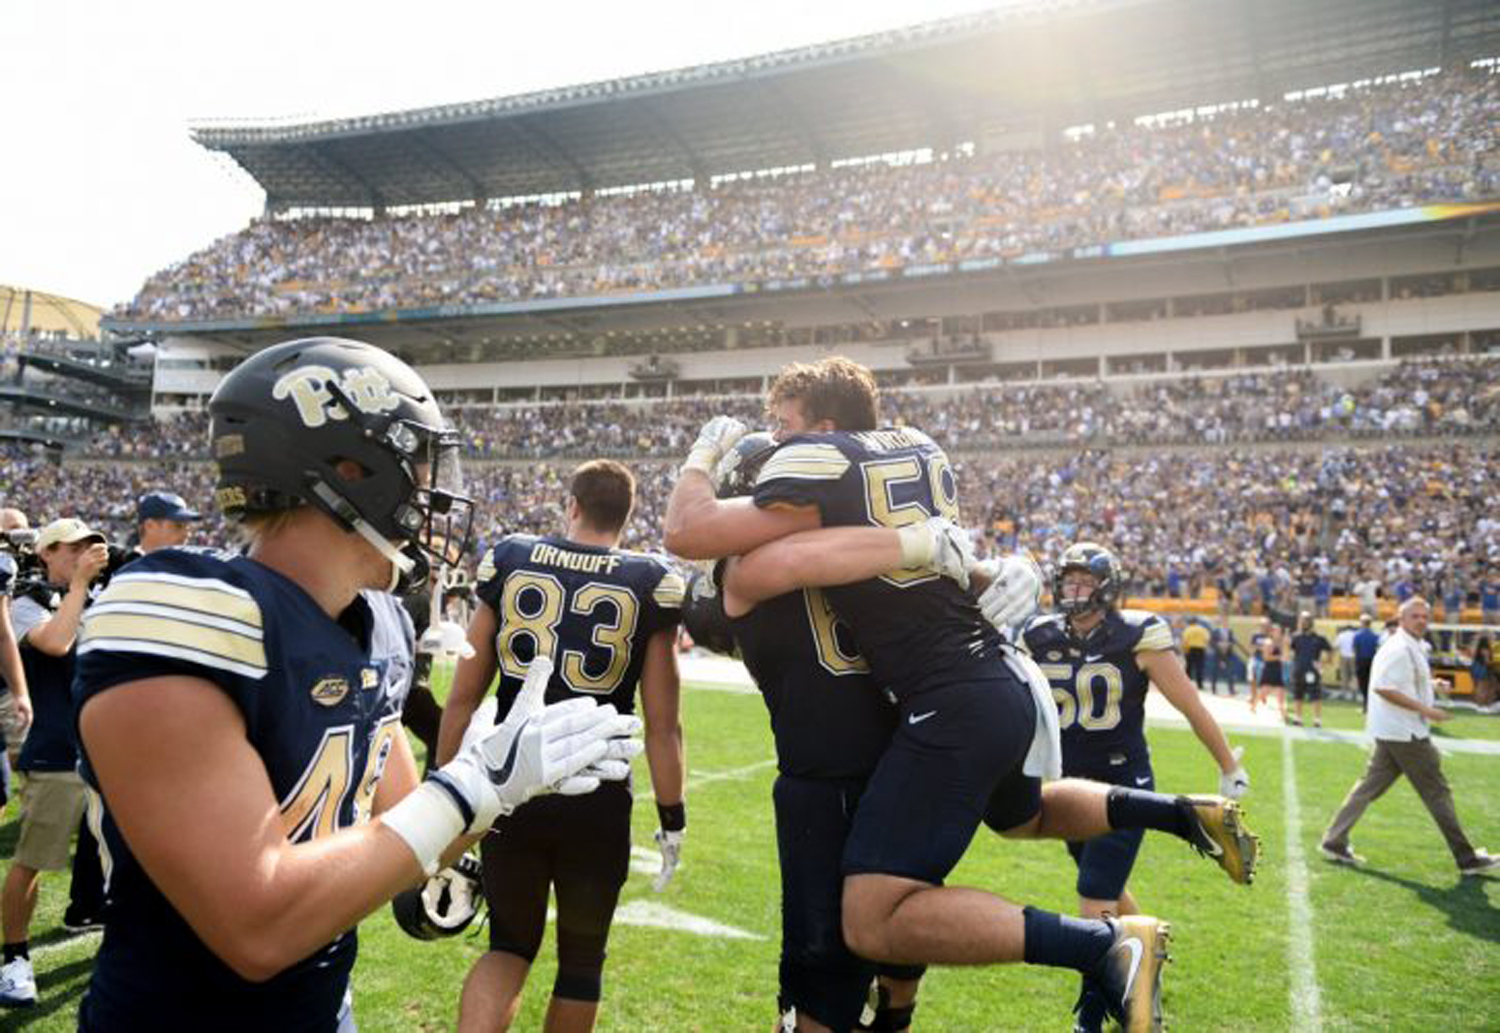 Pitt football upset Penn State in 2016 with a last-minute interception and a final score of 42-39.